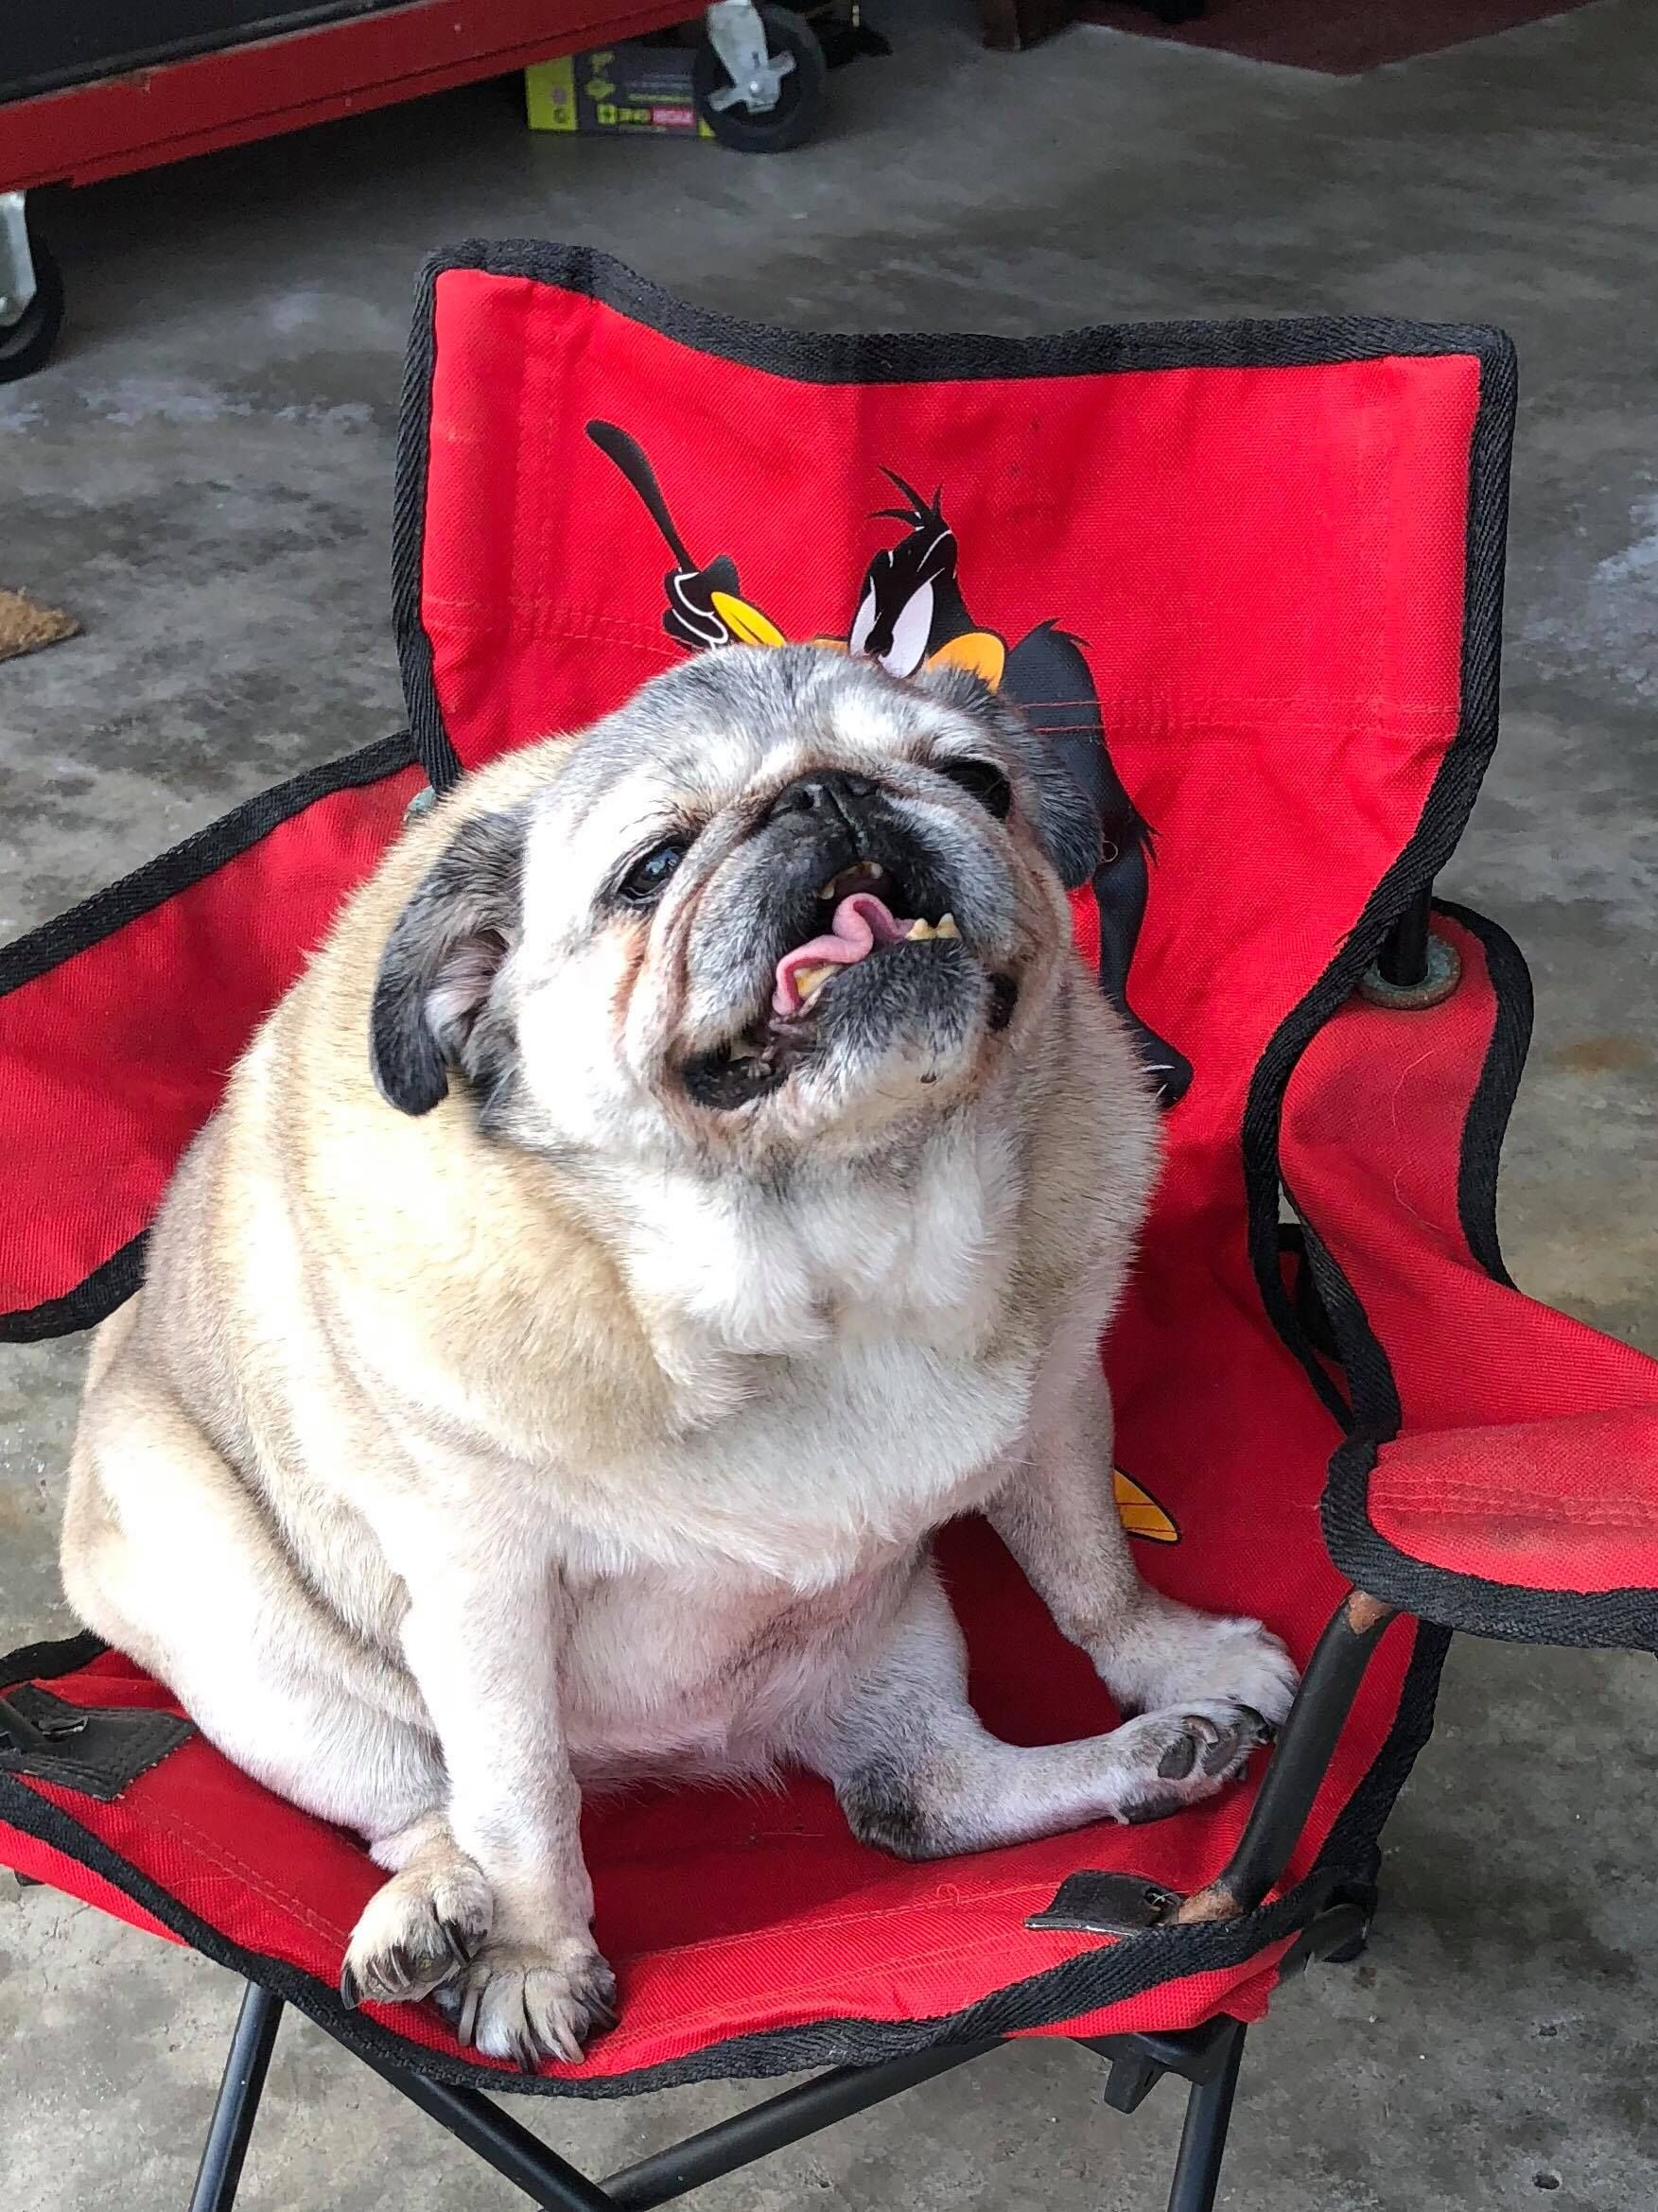 I Think This One Is The Oldest Pug In Our Group Her Name Is